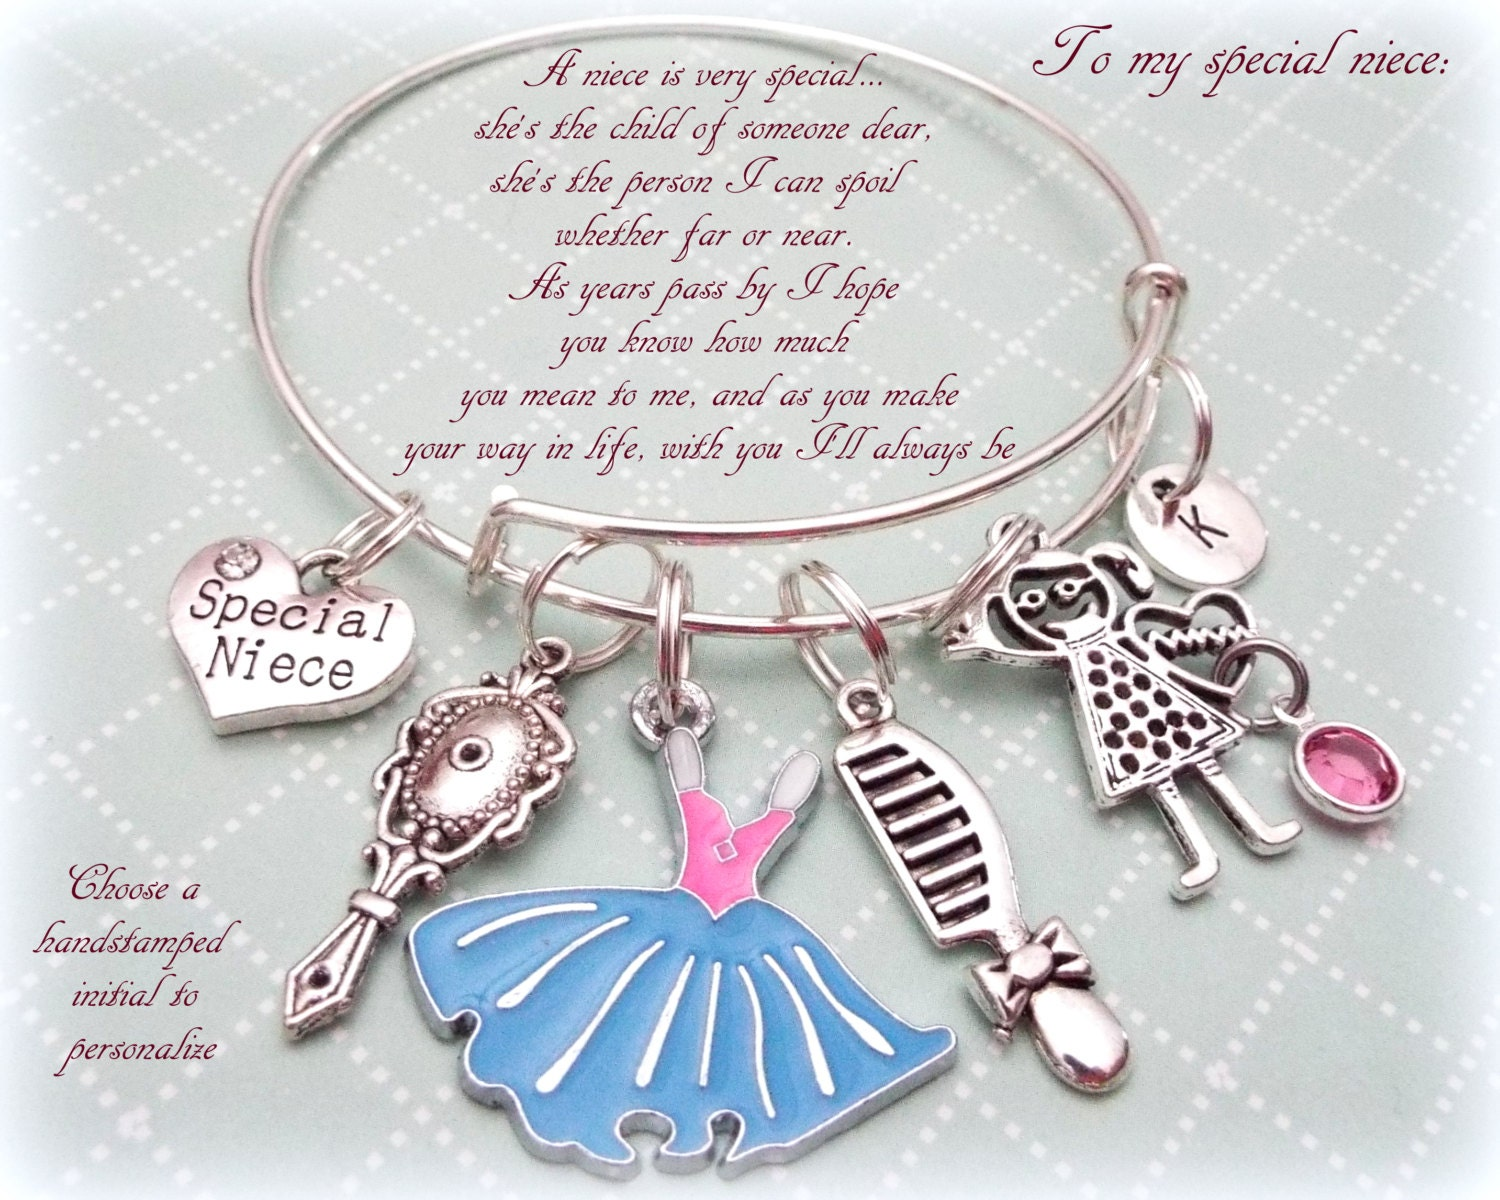 Niece Charm Bracelet, Gift for Niece, Aunt to Niece Gift Idea ...